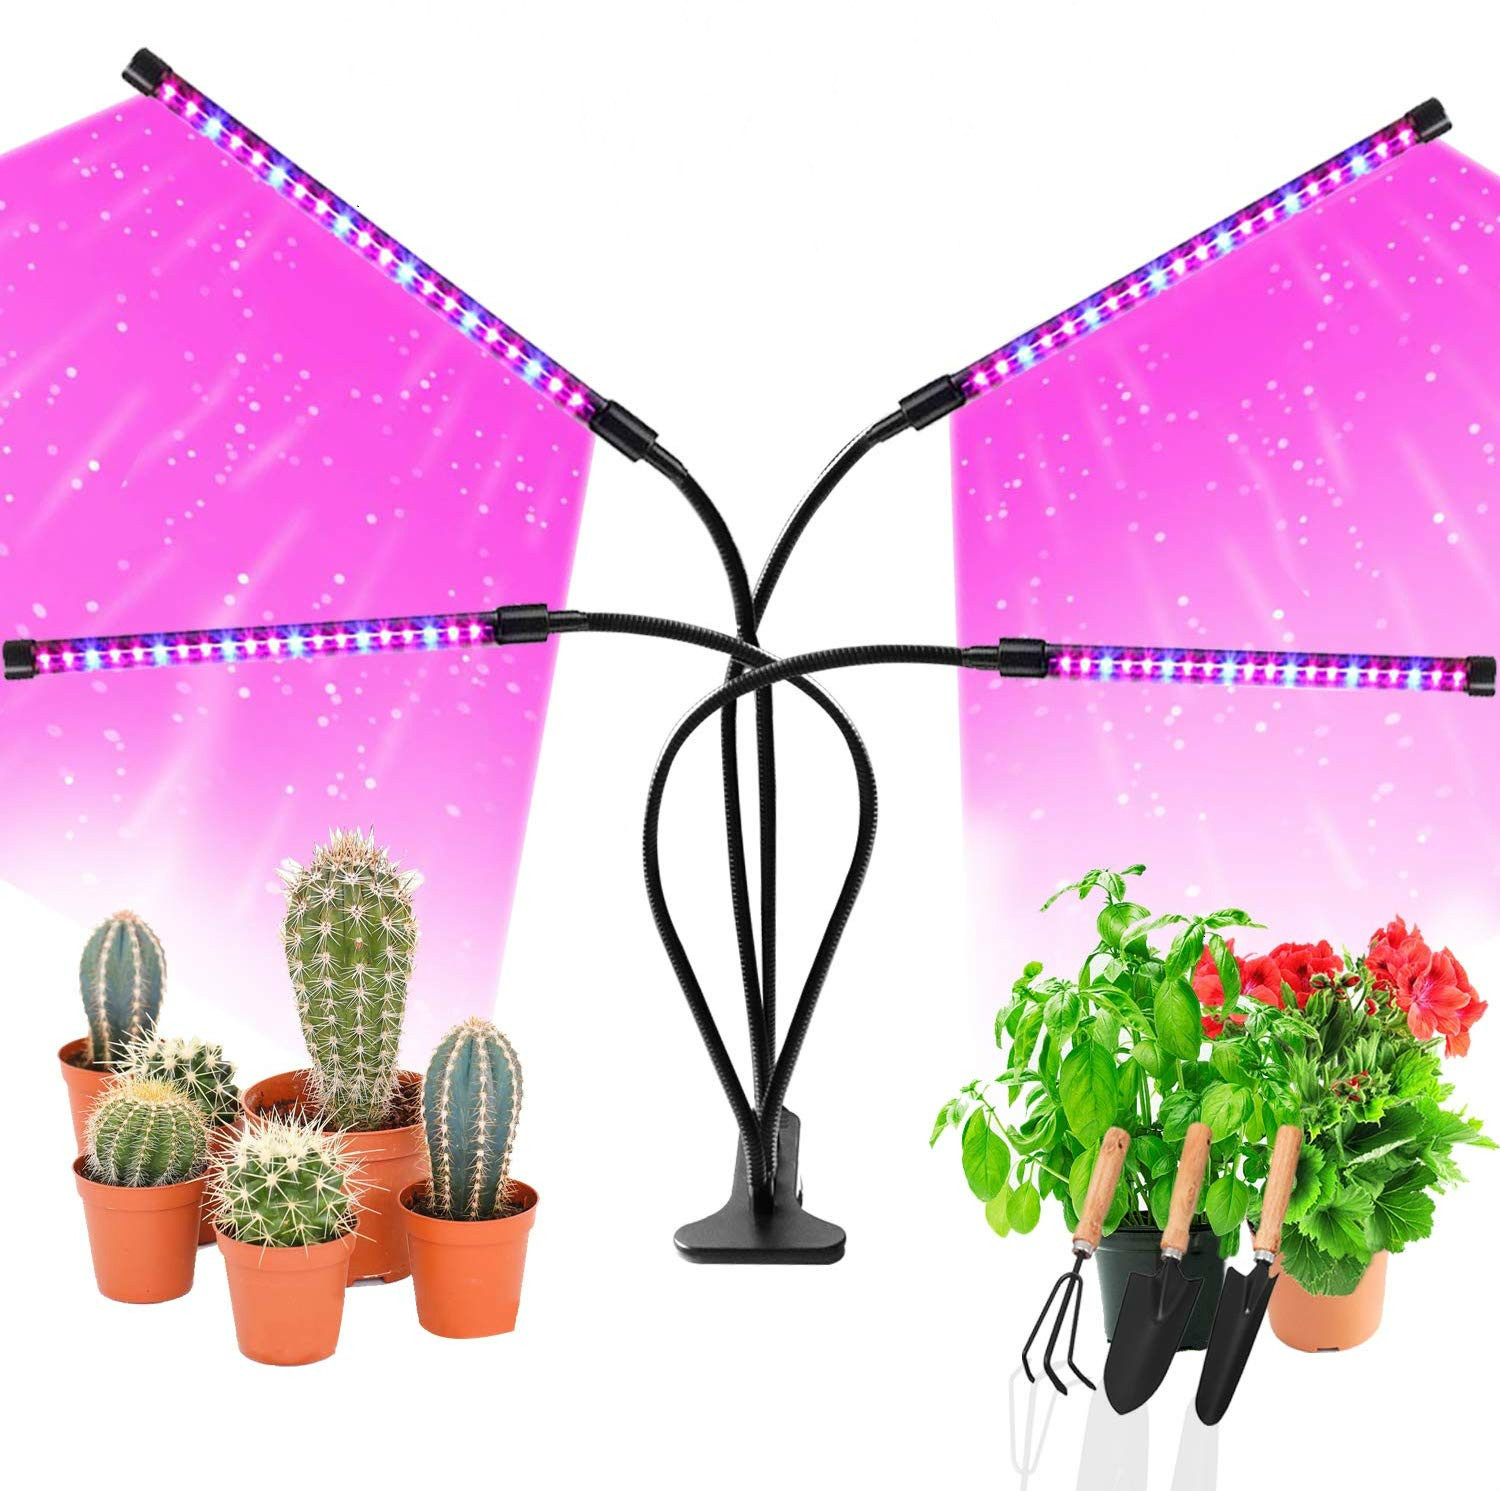 DCOO Grow Light For Indoor Plants 18W 27W 36W Led Grow With Clip For 9 Dimmable Full Spectrum Plant Lights With Timer Phyto Lamp